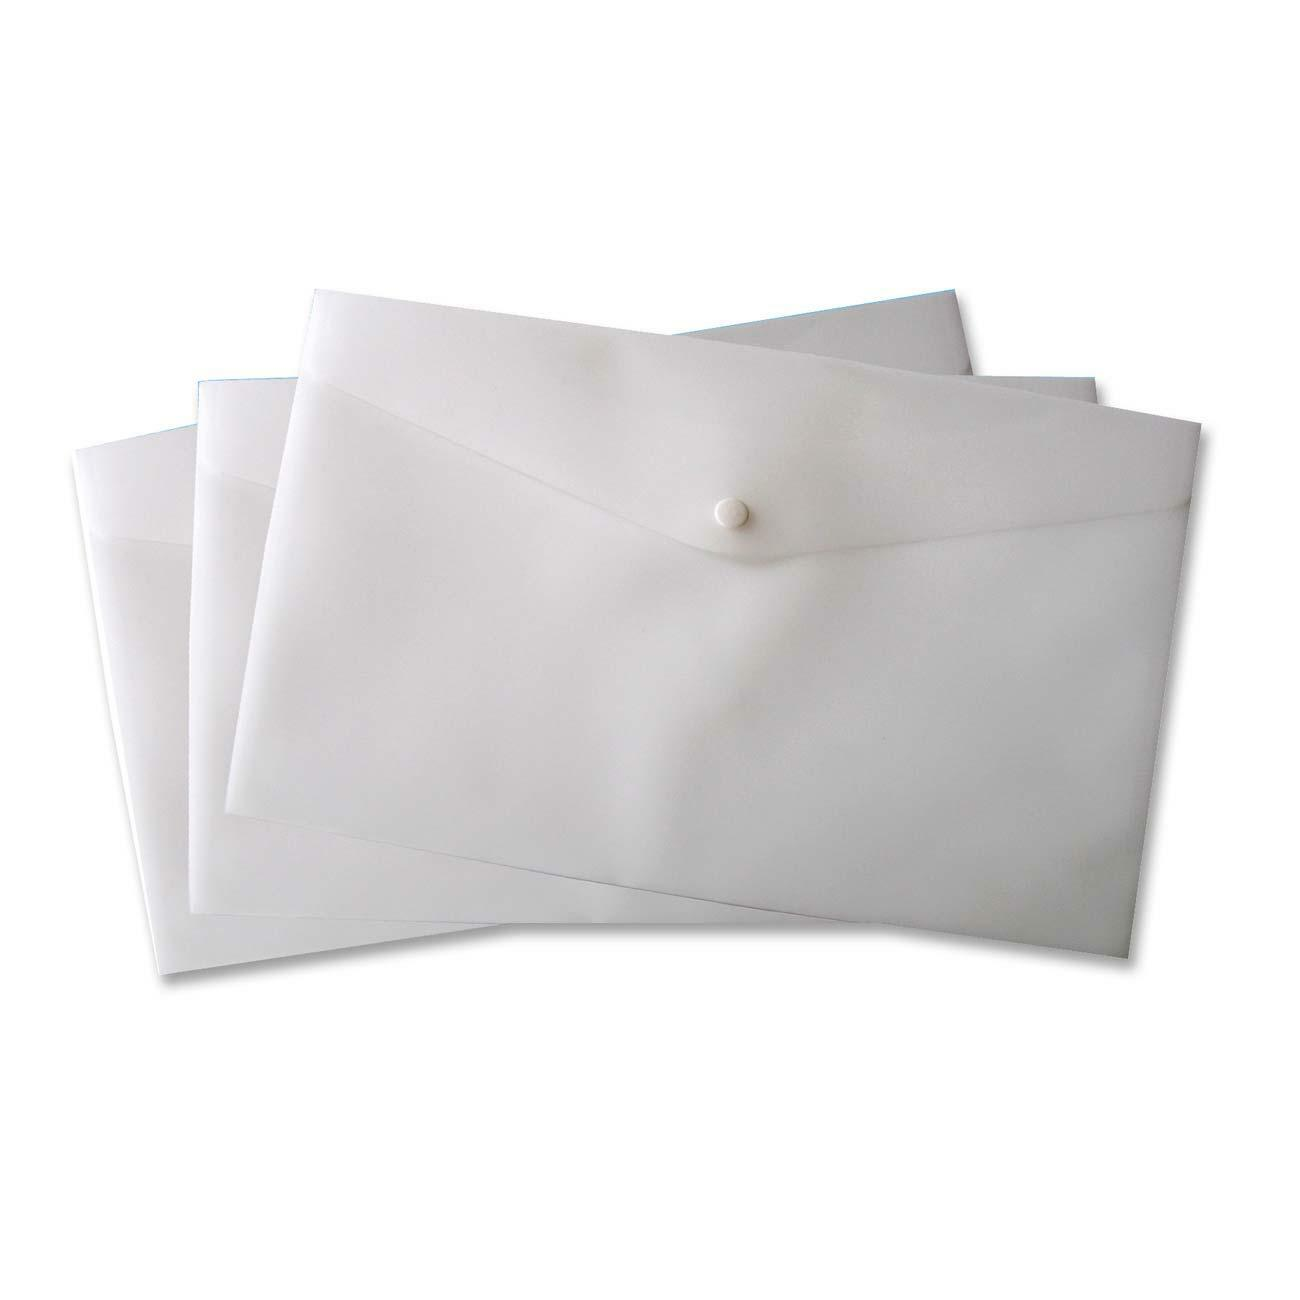 central office supplies corp office supplies envelopes